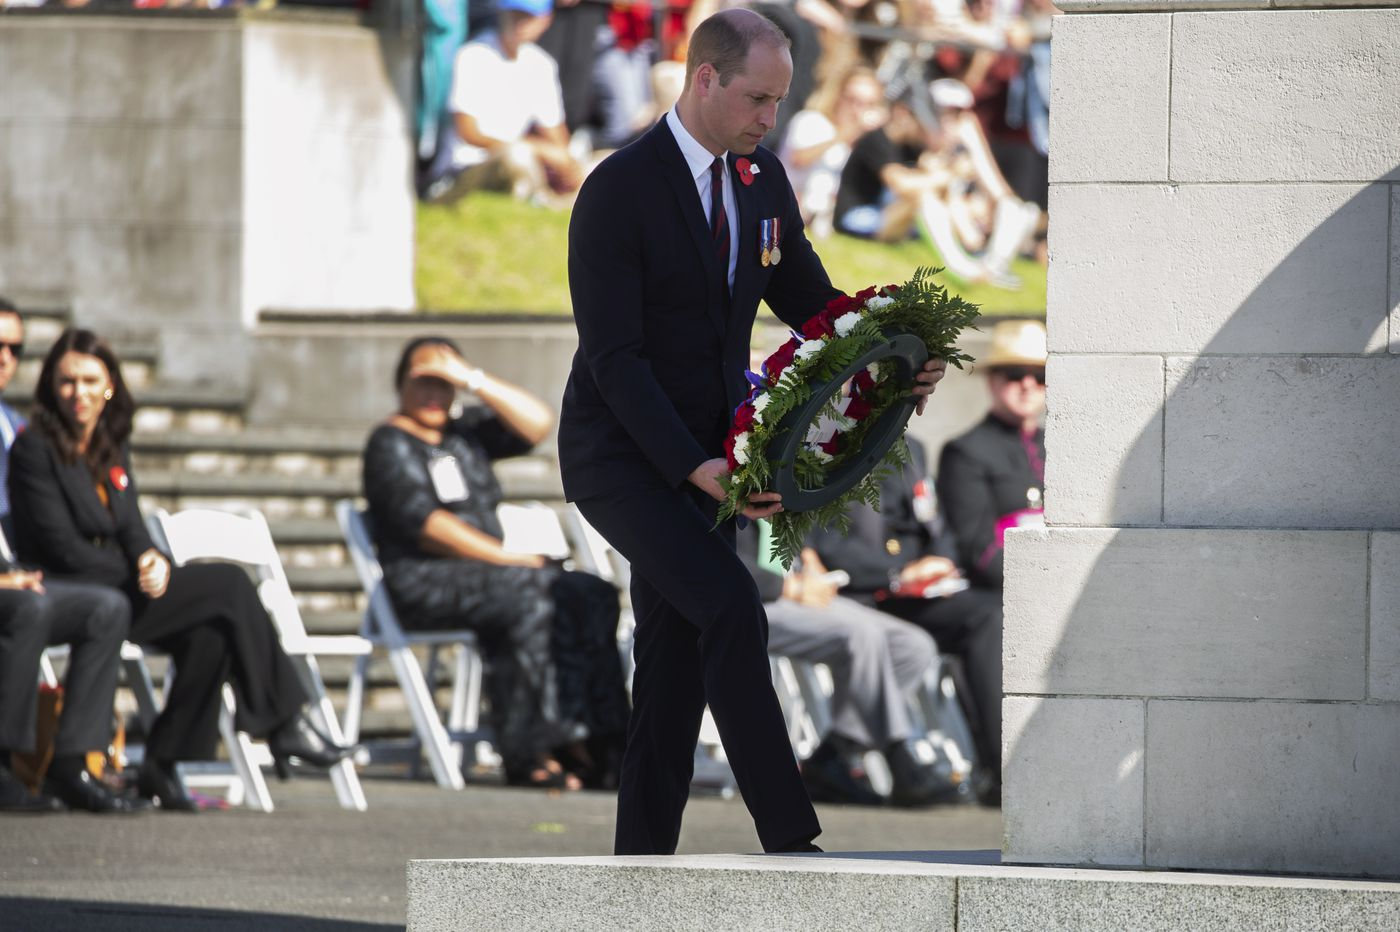 Prince William lays Anzac wreath, later to visit New Zealand mosques